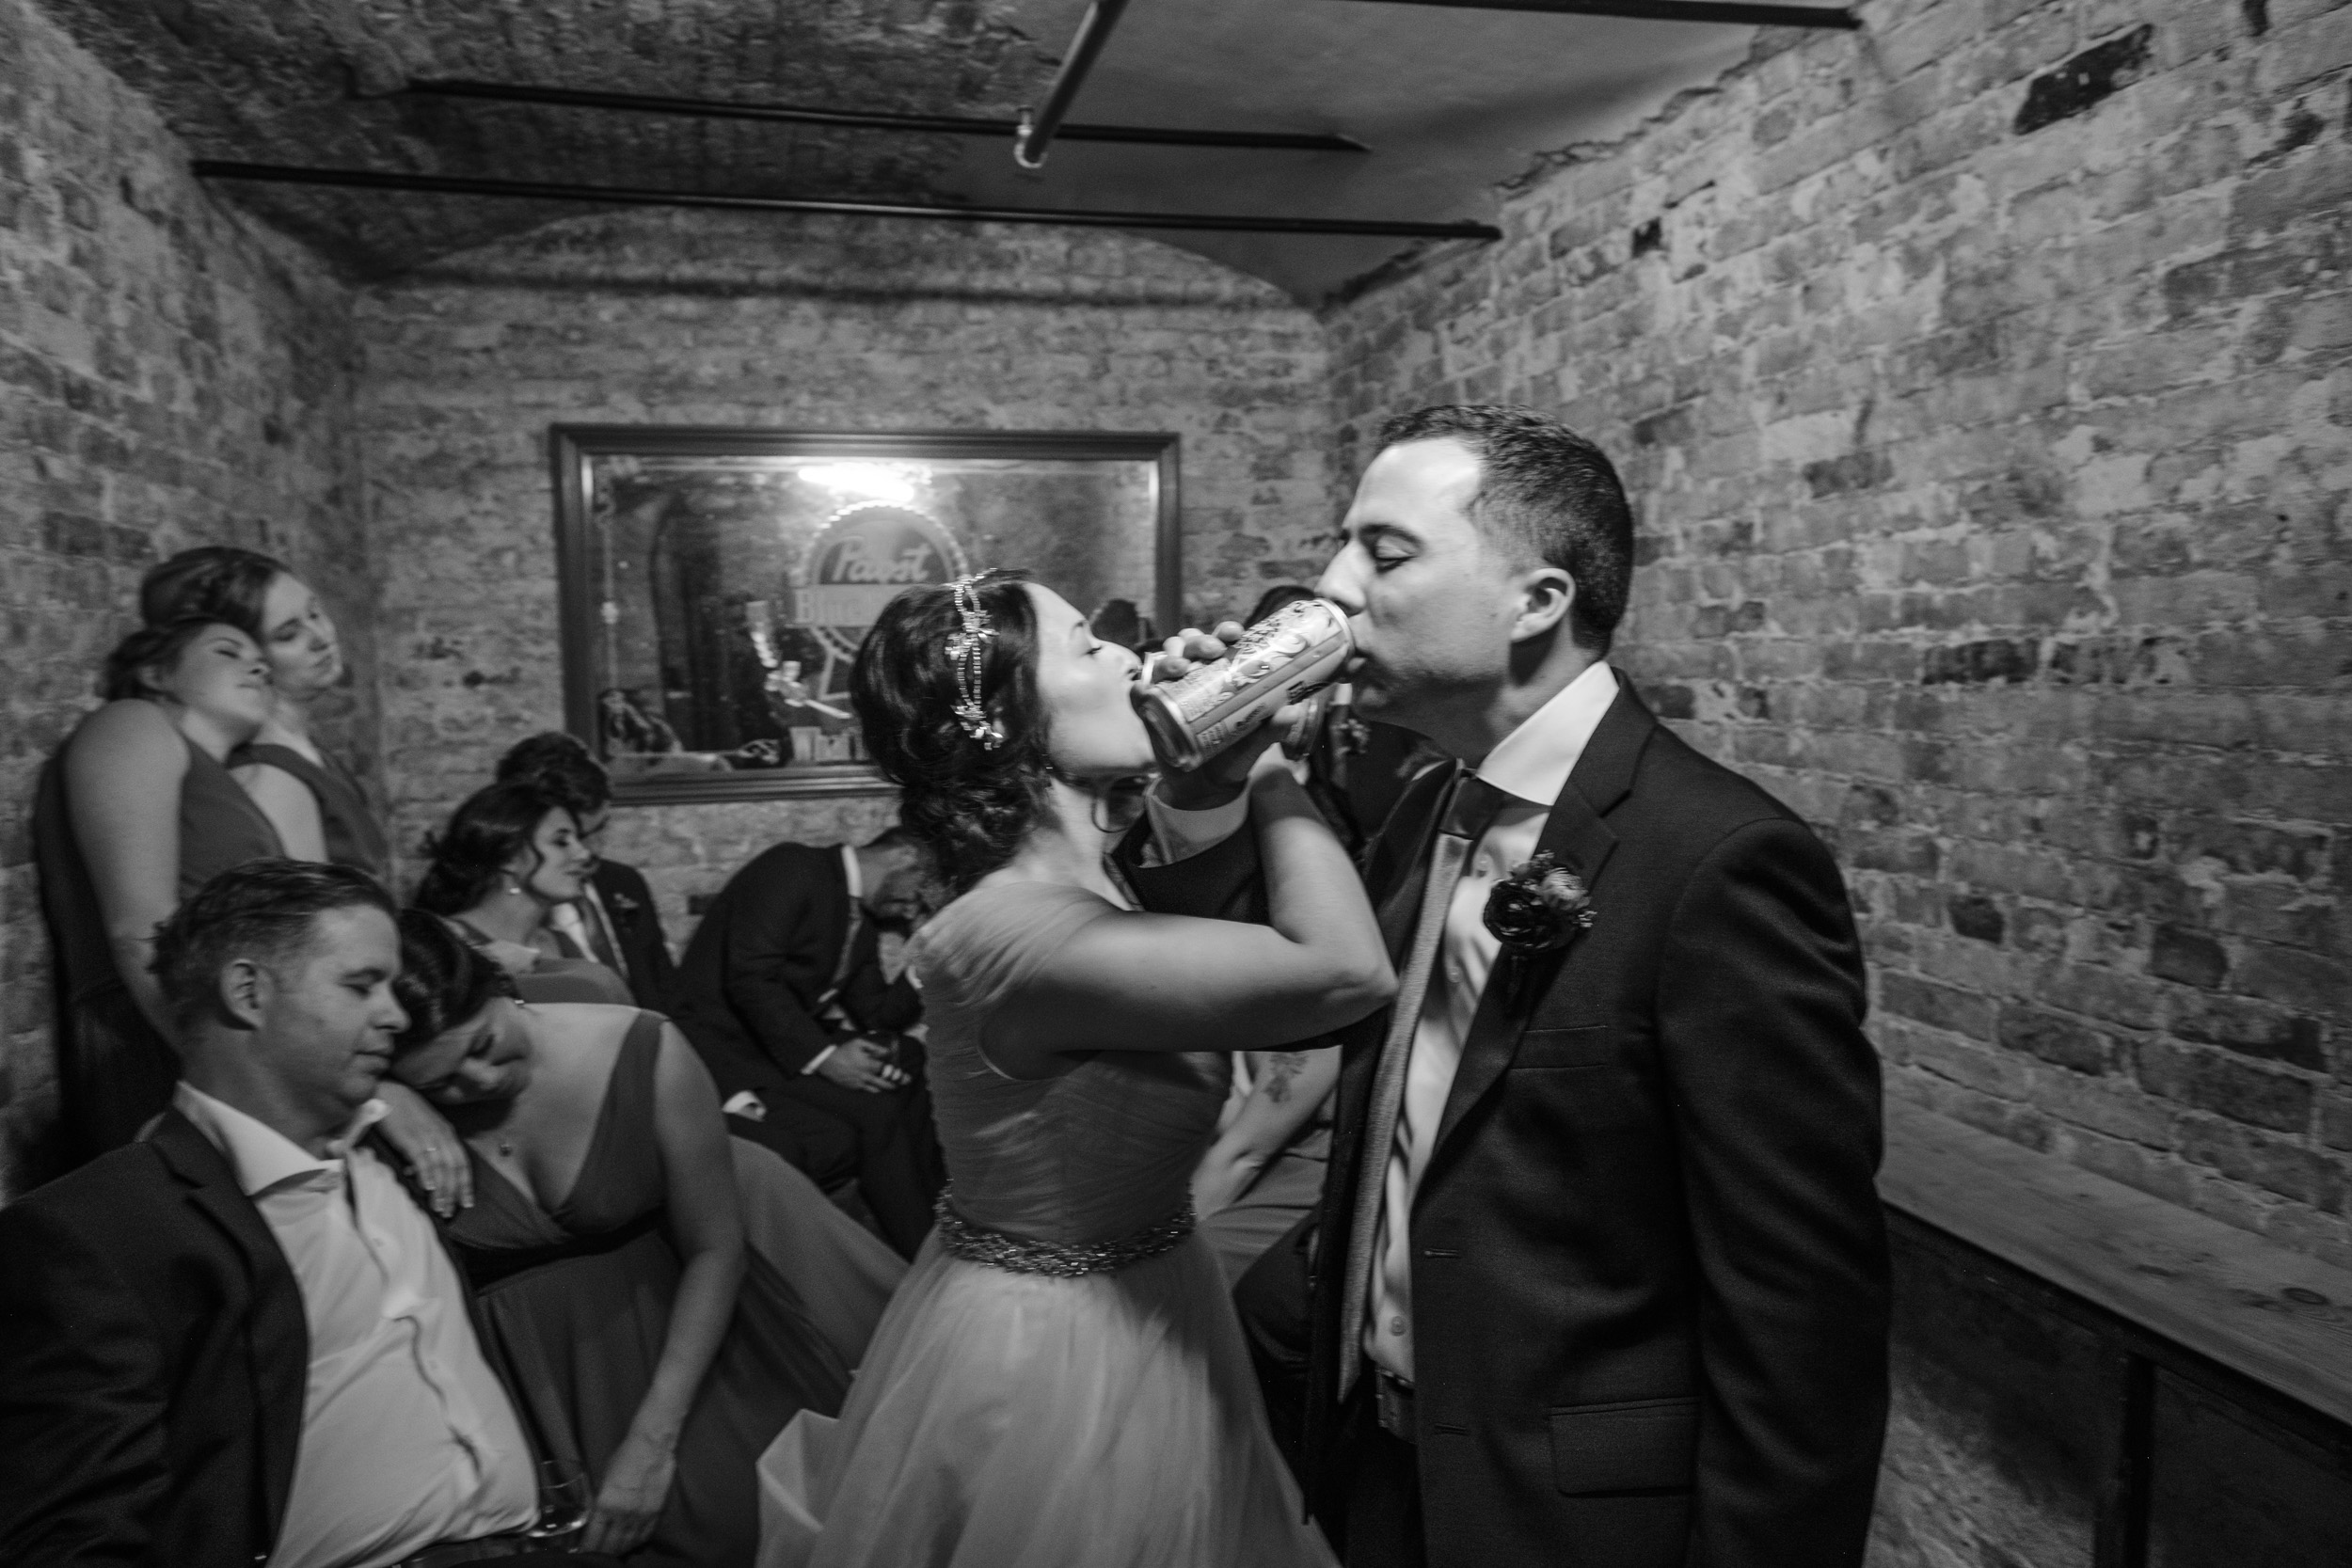 Bride and groom drinking Pabst Beer in jail cell.